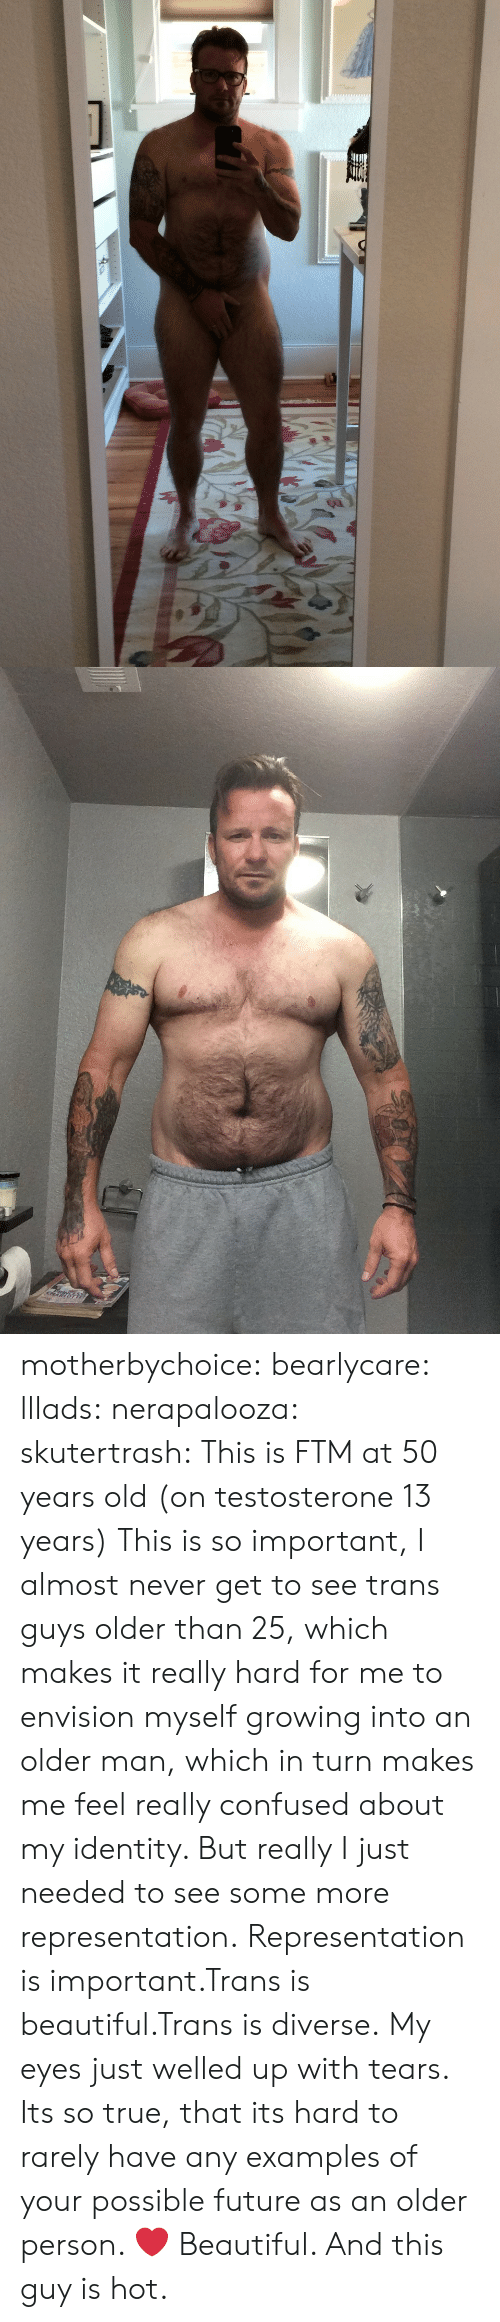 Diverse: motherbychoice:  bearlycare:  lllads:  nerapalooza:  skutertrash:  This is FTM at 50 years old (on testosterone 13 years)  This is so important, I almost never get to see trans guys older than 25, which makes it really hard for me to envision myself growing into an older man, which in turn makes me feel really confused about my identity. But really I just needed to see some more representation.  Representation is important.Trans is beautiful.Trans is diverse.   My eyes just welled up with tears. Its so true, that its hard to rarely have any examples of your possible future as an older person.  ❤️  Beautiful. And this guy is hot.